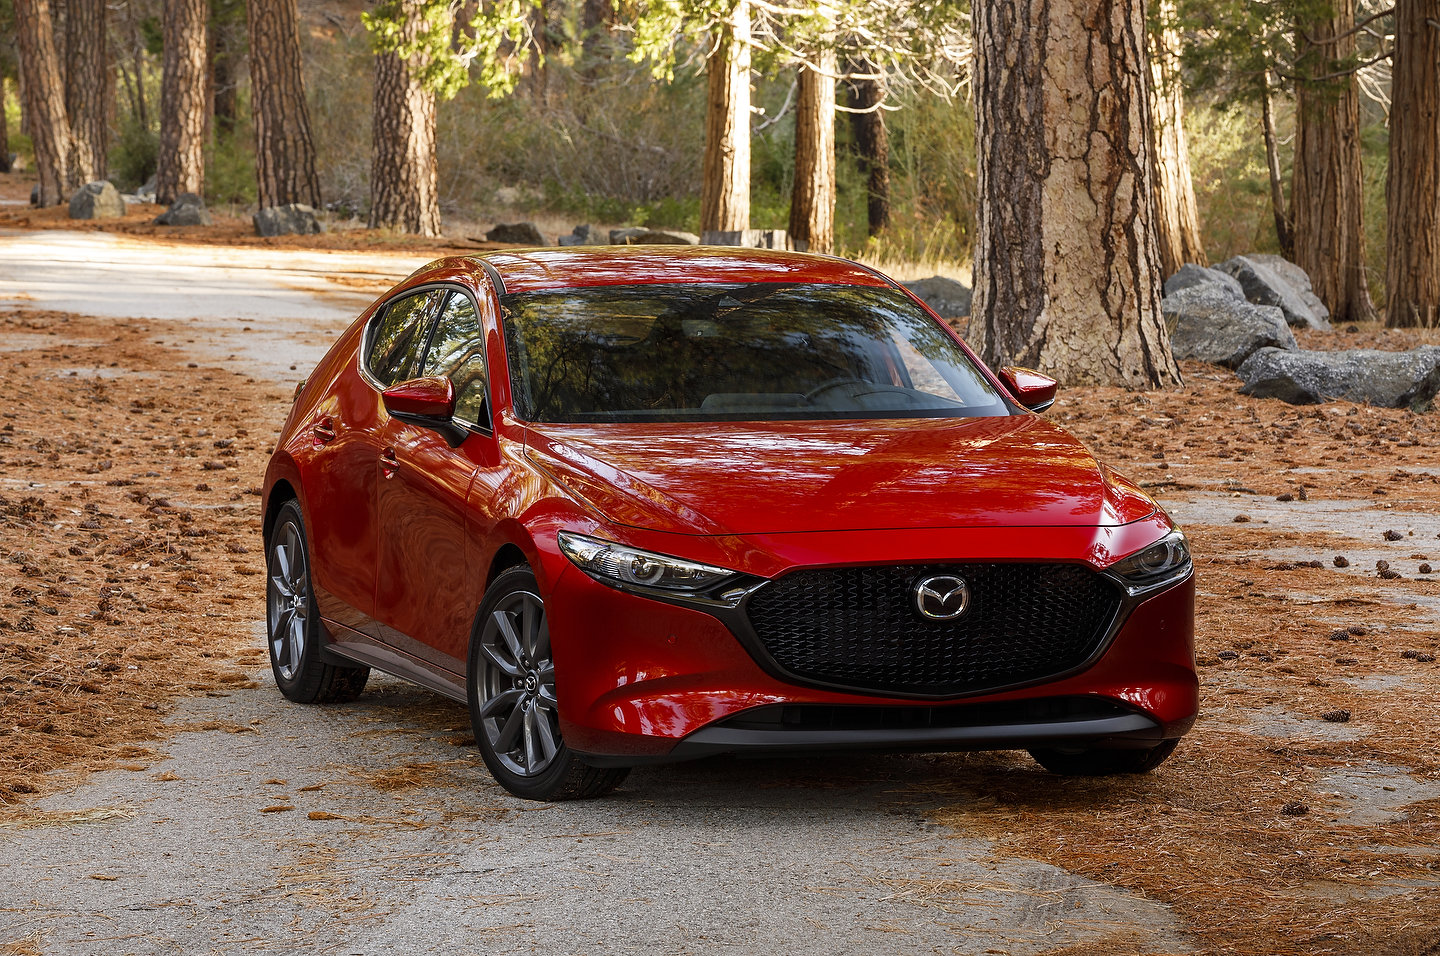 2019 mazda3 vs 2019 hyundai elantra spec comparison